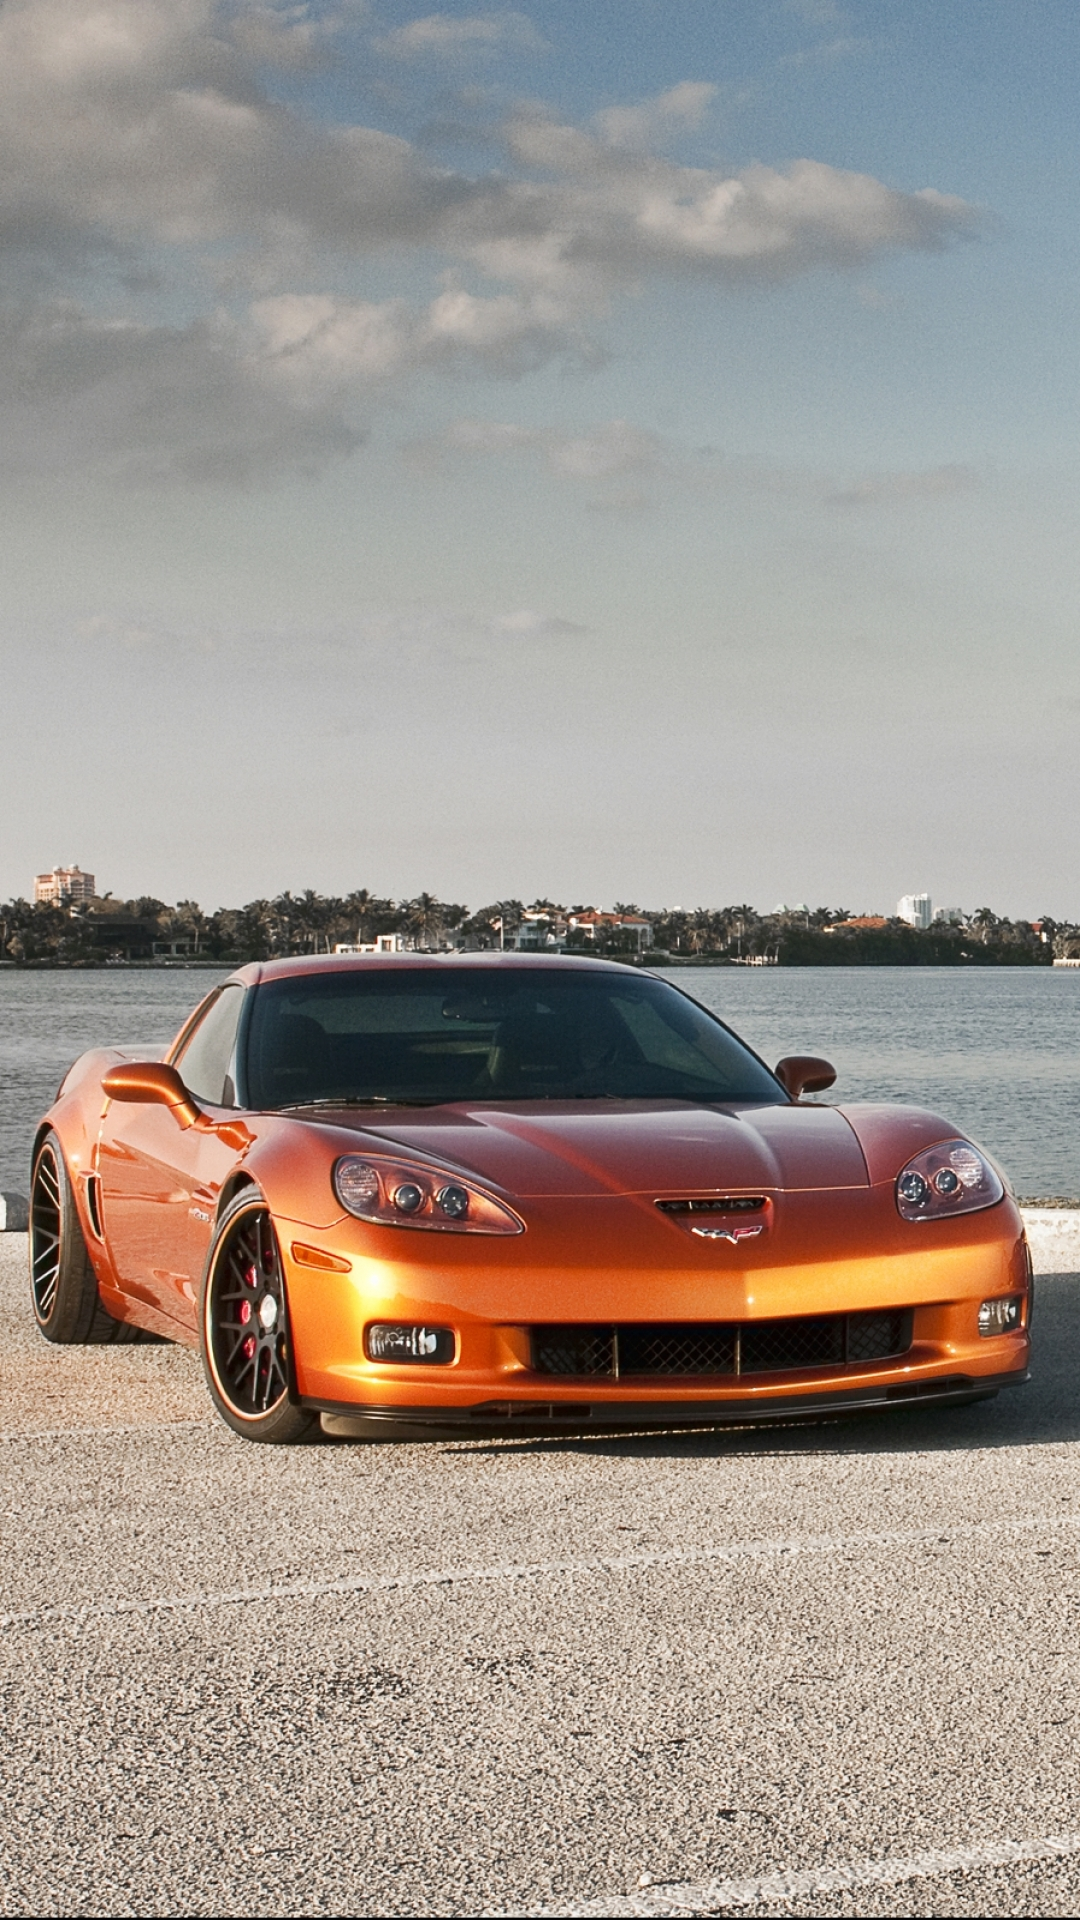 chevrolet wallpaper for iphone